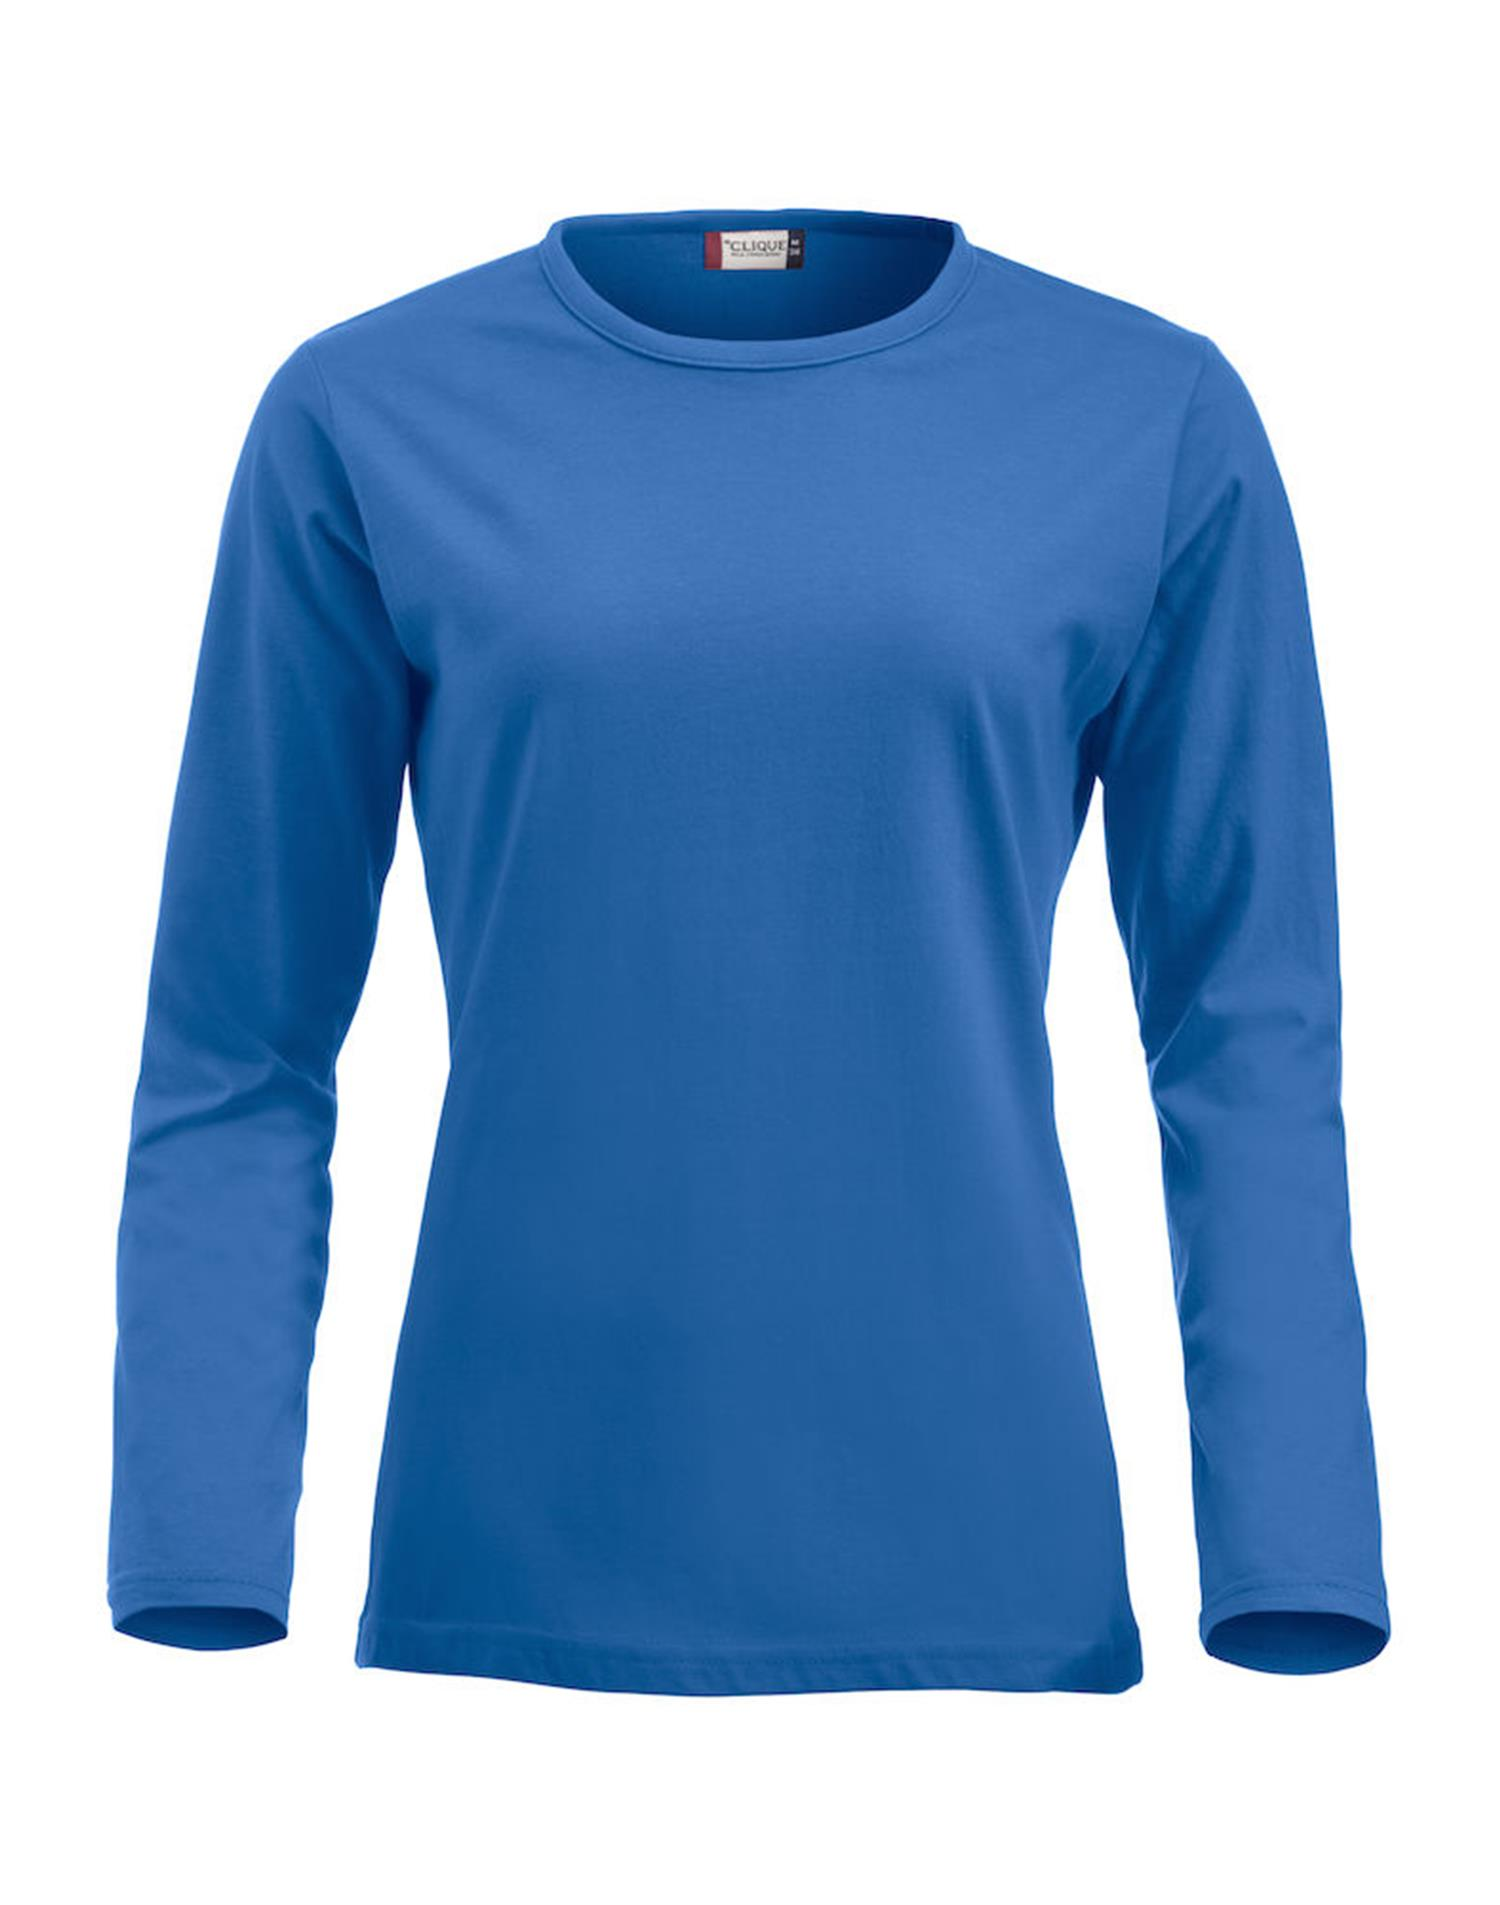 NewWave Fashion-T Ladies Long Sleeve (S - ROYAL)